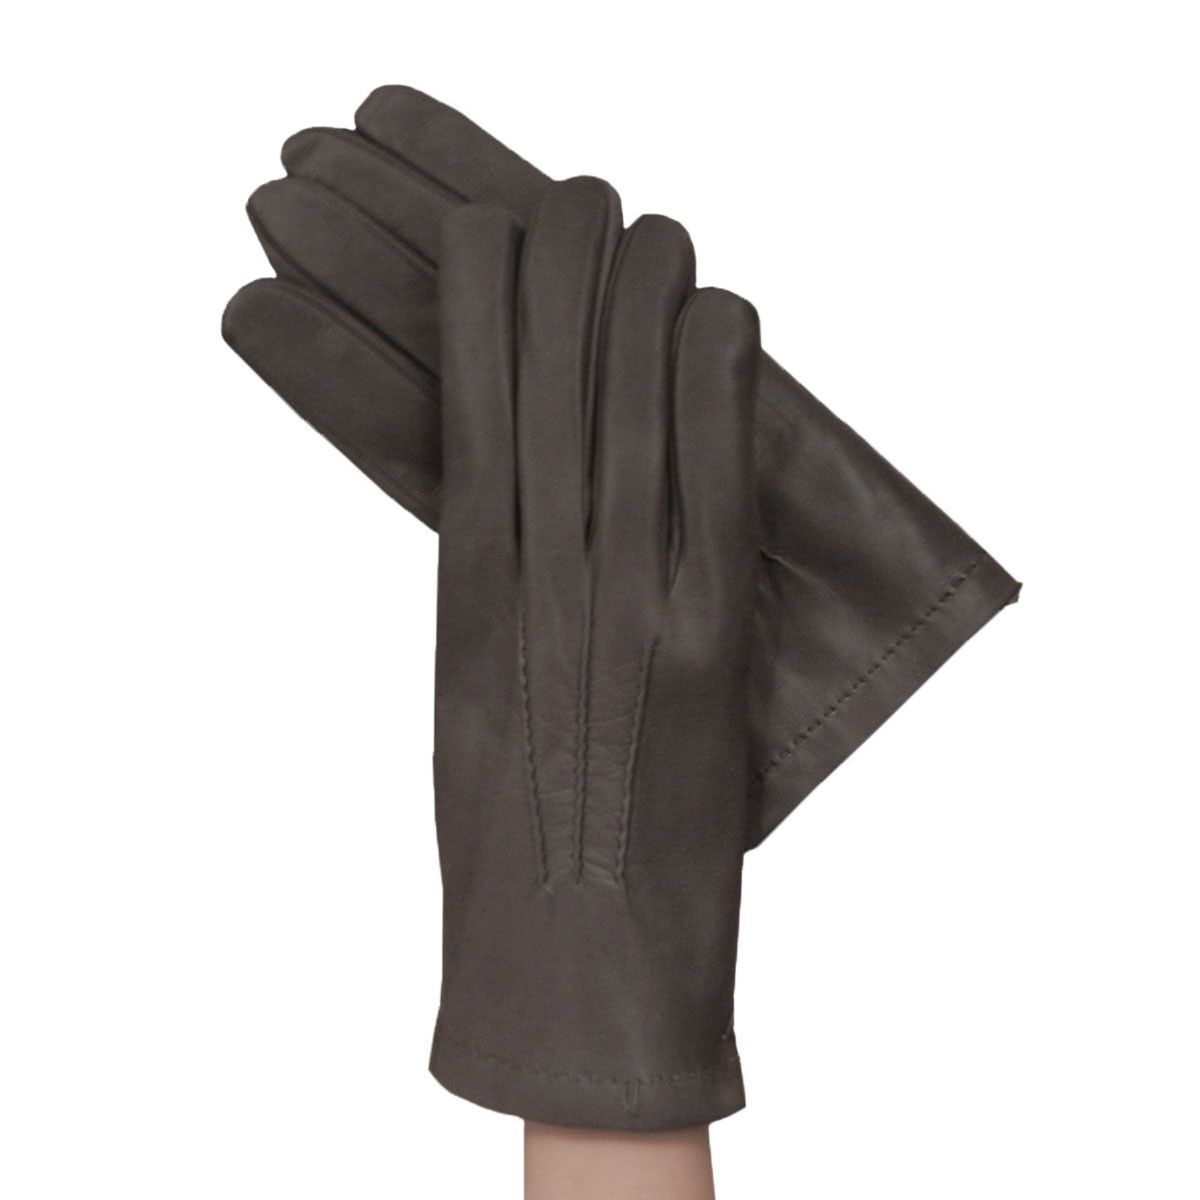 Black leather gloves lined with cashmere - Men S Grey Italian Kidskin Leather Gloves Have Hand Stitched Feature Lined With Soft Warm Cashmere For The Cold Winter Days Grey Leather Dress Gloves For